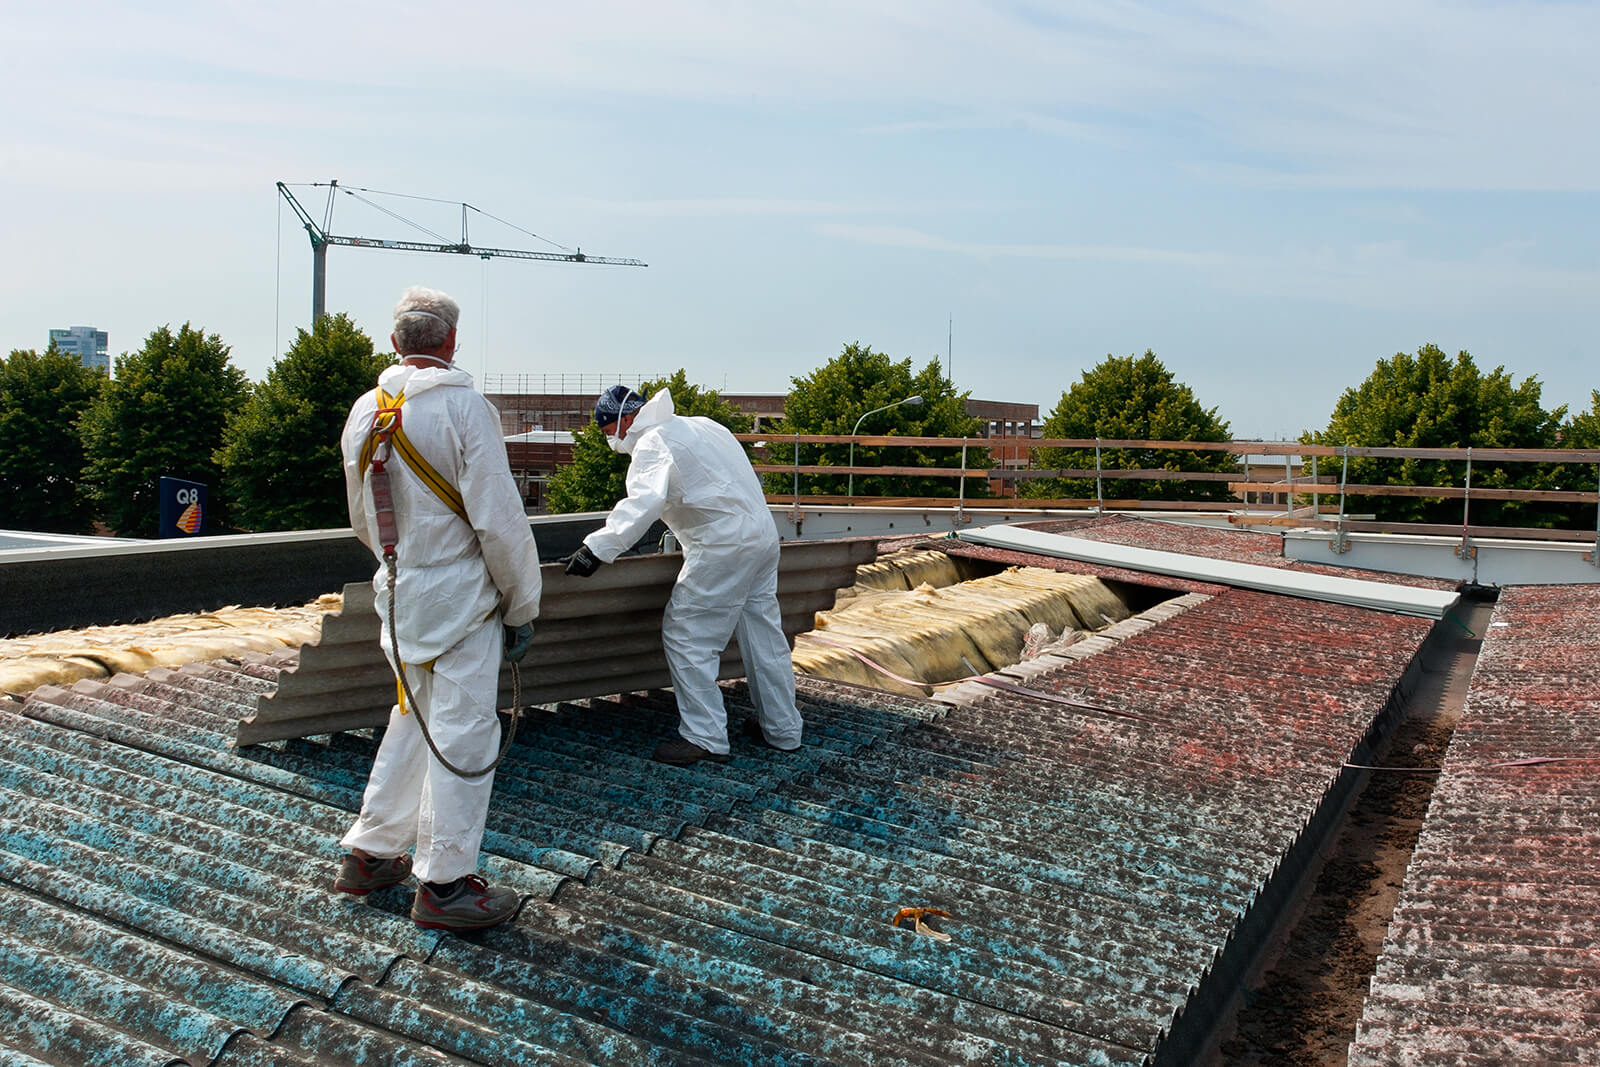 Professional Asbestos Surveys and Removals - Workers remove asbestos from residential building